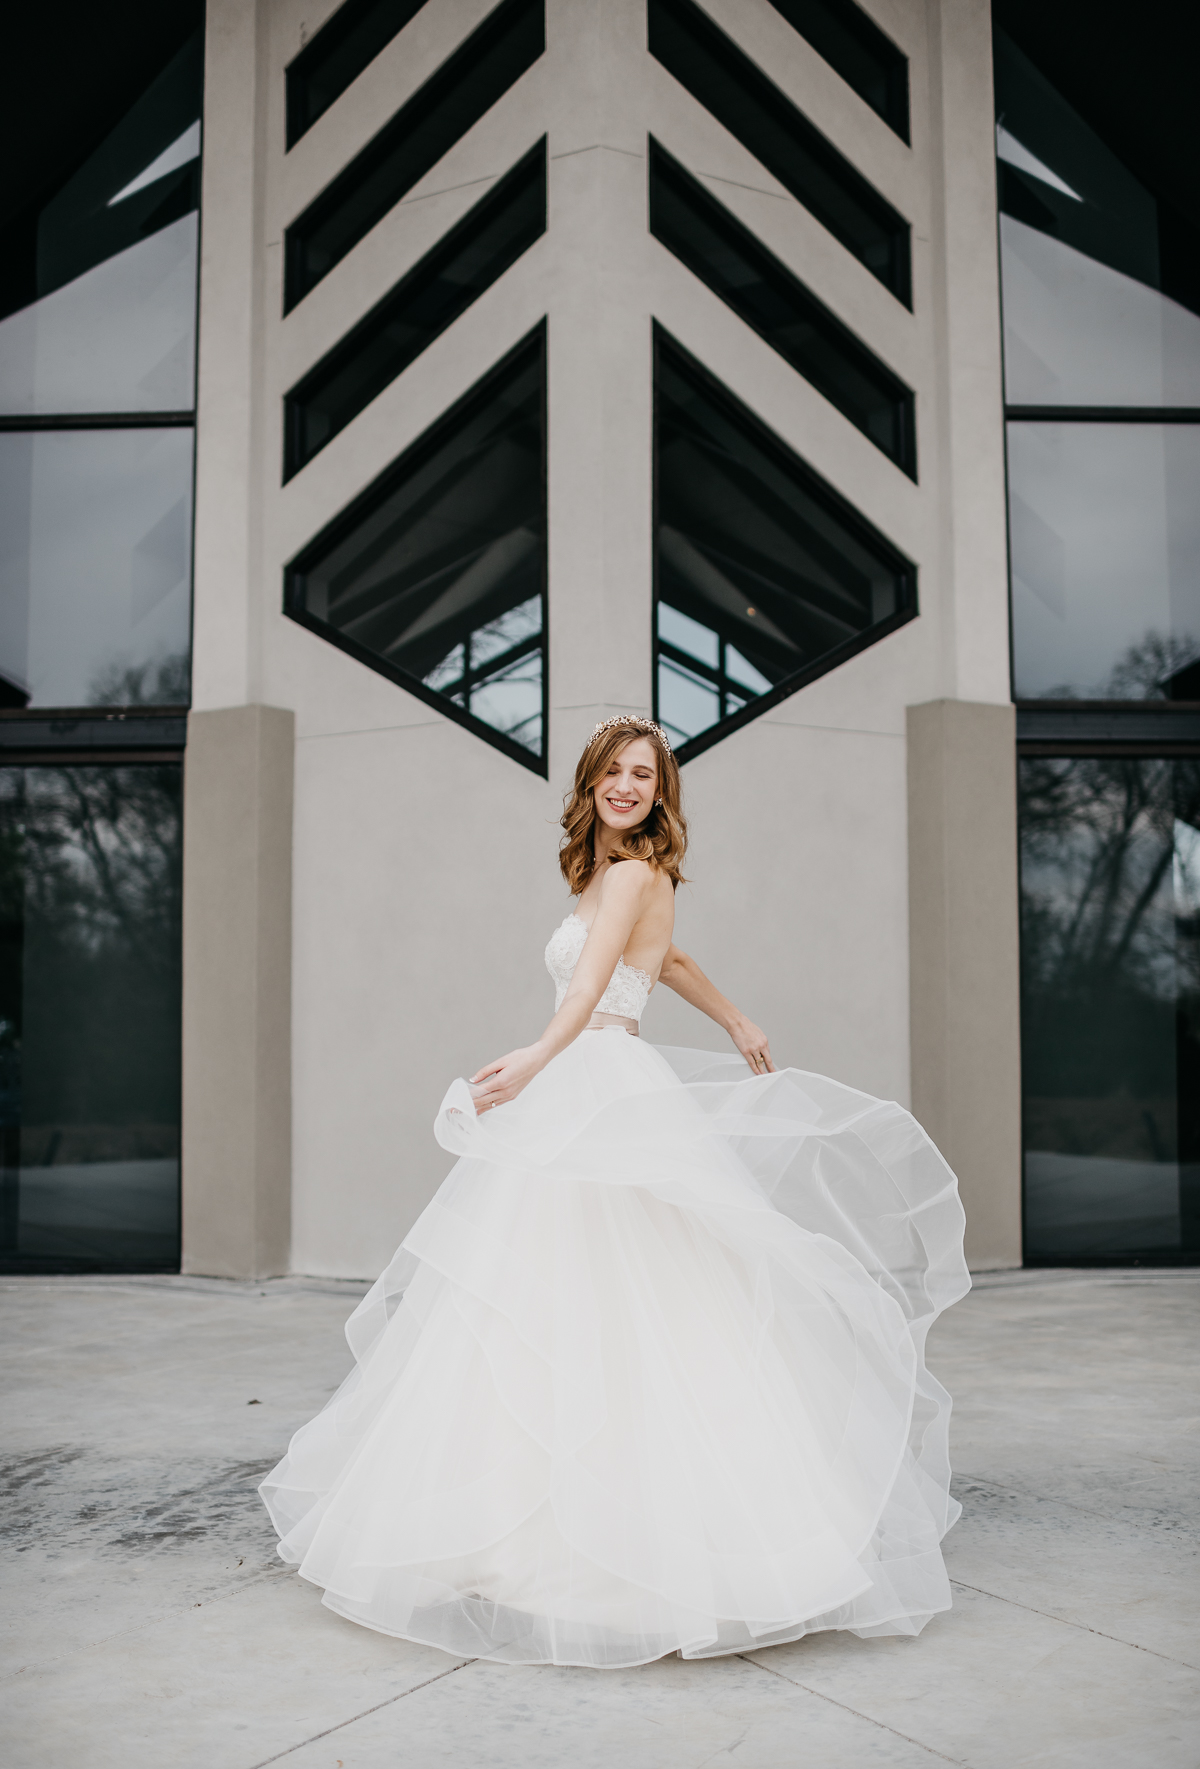 Modern elegant carefree nature wedding at Jennings Trace wedding venue in Conroe Texas camera shi photography bride